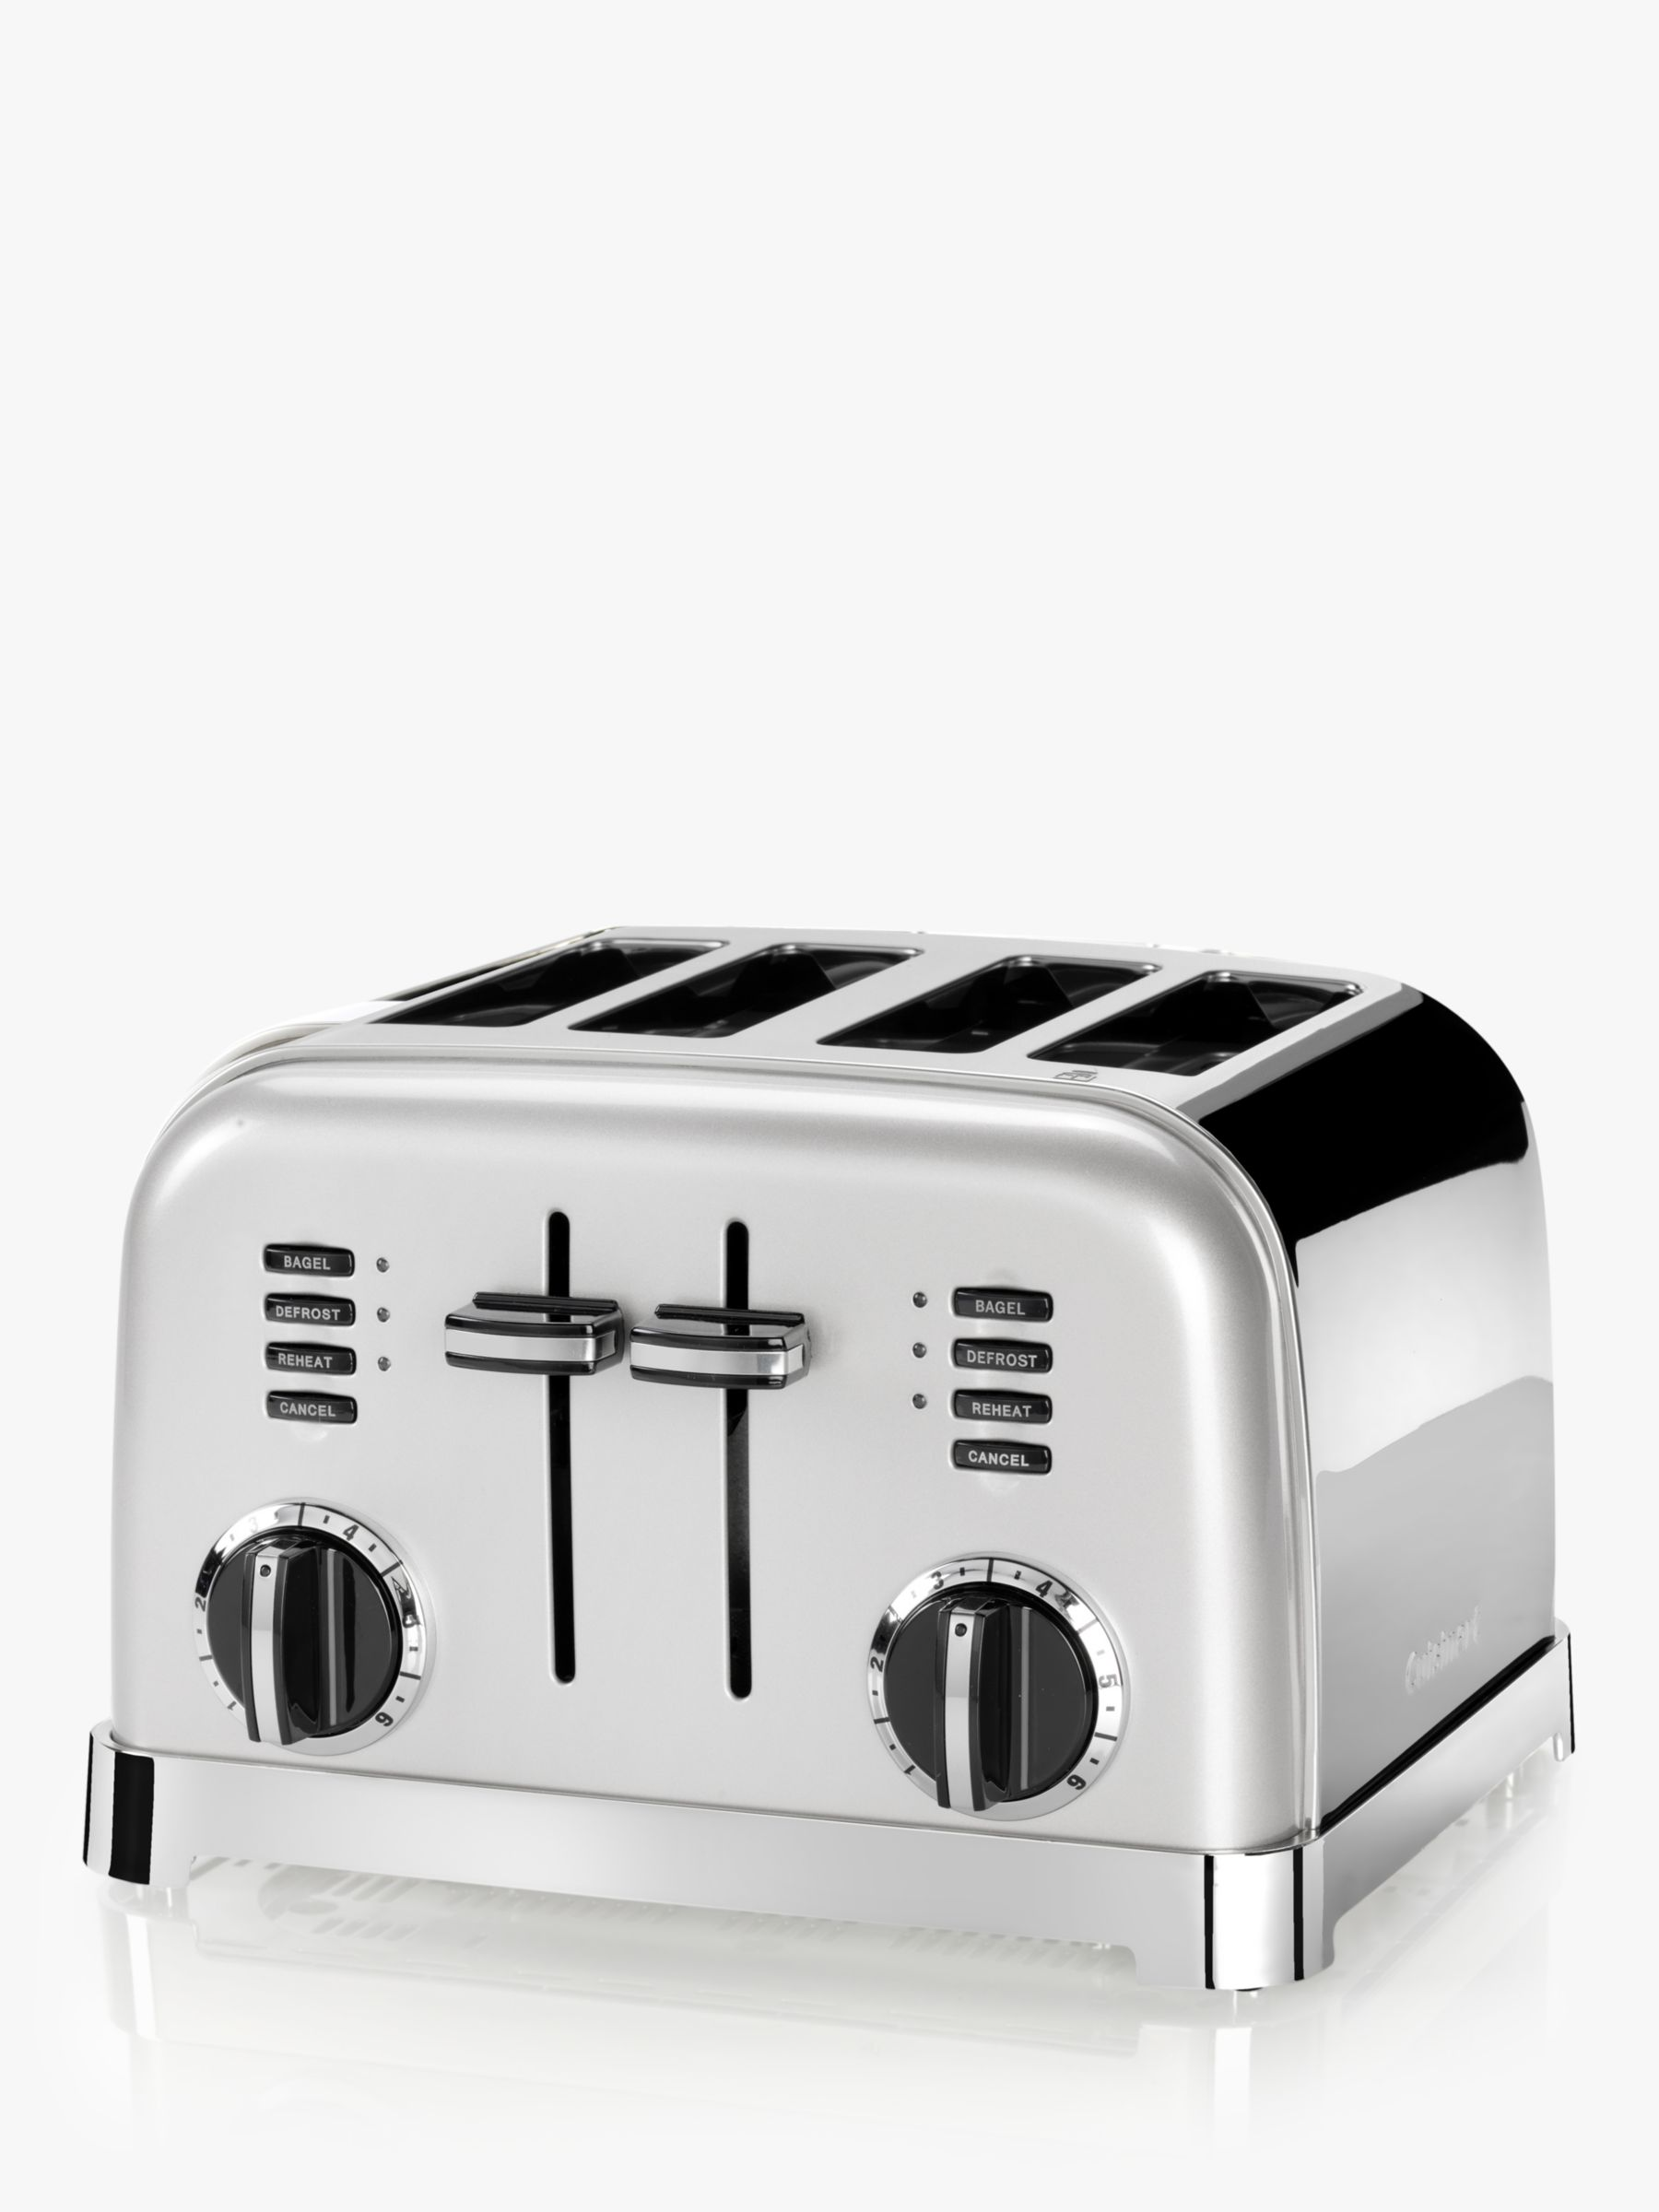 Cuisinart Cuisinart CPT180SU 4-Slice Toaster, Frosted Pearl